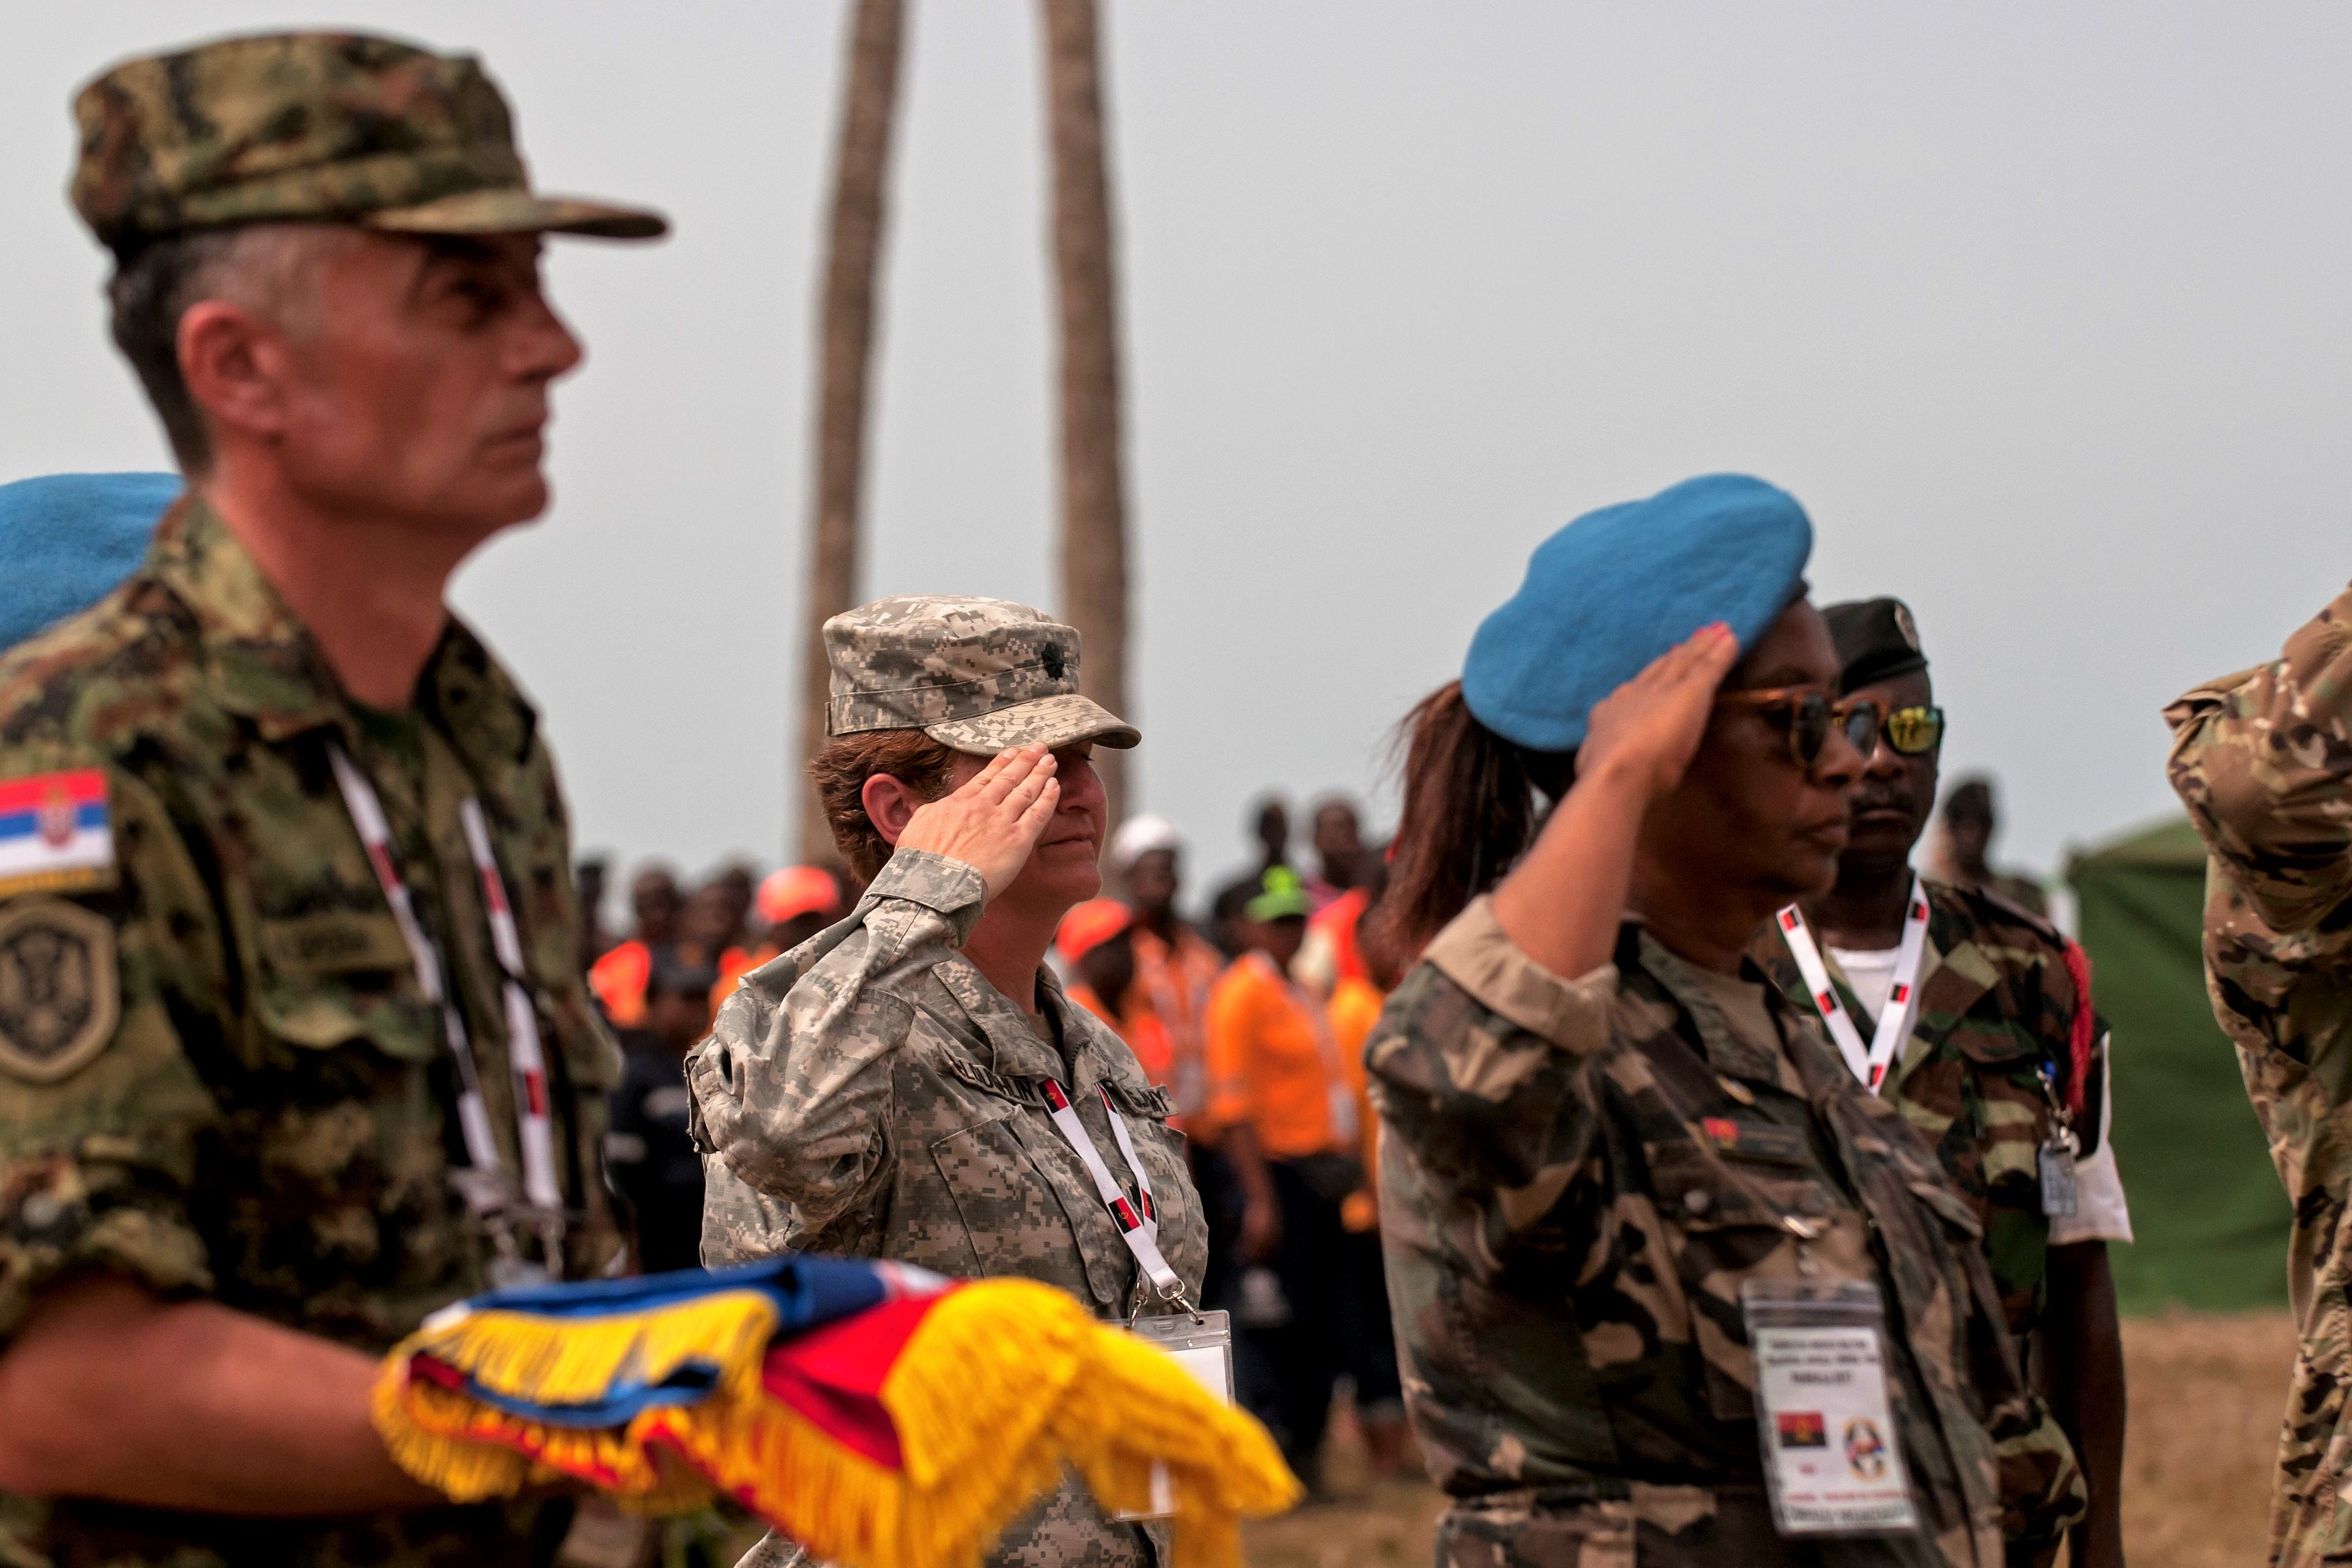 Lt. Col. Jill McLoughlin, a preventative medicine officer with the Ohio Army National Guard, represents the U.S. in the exchanging of flags during the closing ceremony for the PAMBALA 2017 exercise Dec. 14, 2017, in Bengo Province, Angola. Personnel from the Serbian Armed Forces and the Ohio National Guard exchanged flags with their host nation, the Republic of Angola, and remarks were given by representatives of each participating country on the success of the first-ever engagement. (Ohio National Guard photo by Staff Sgt. Wendy Kuhn)